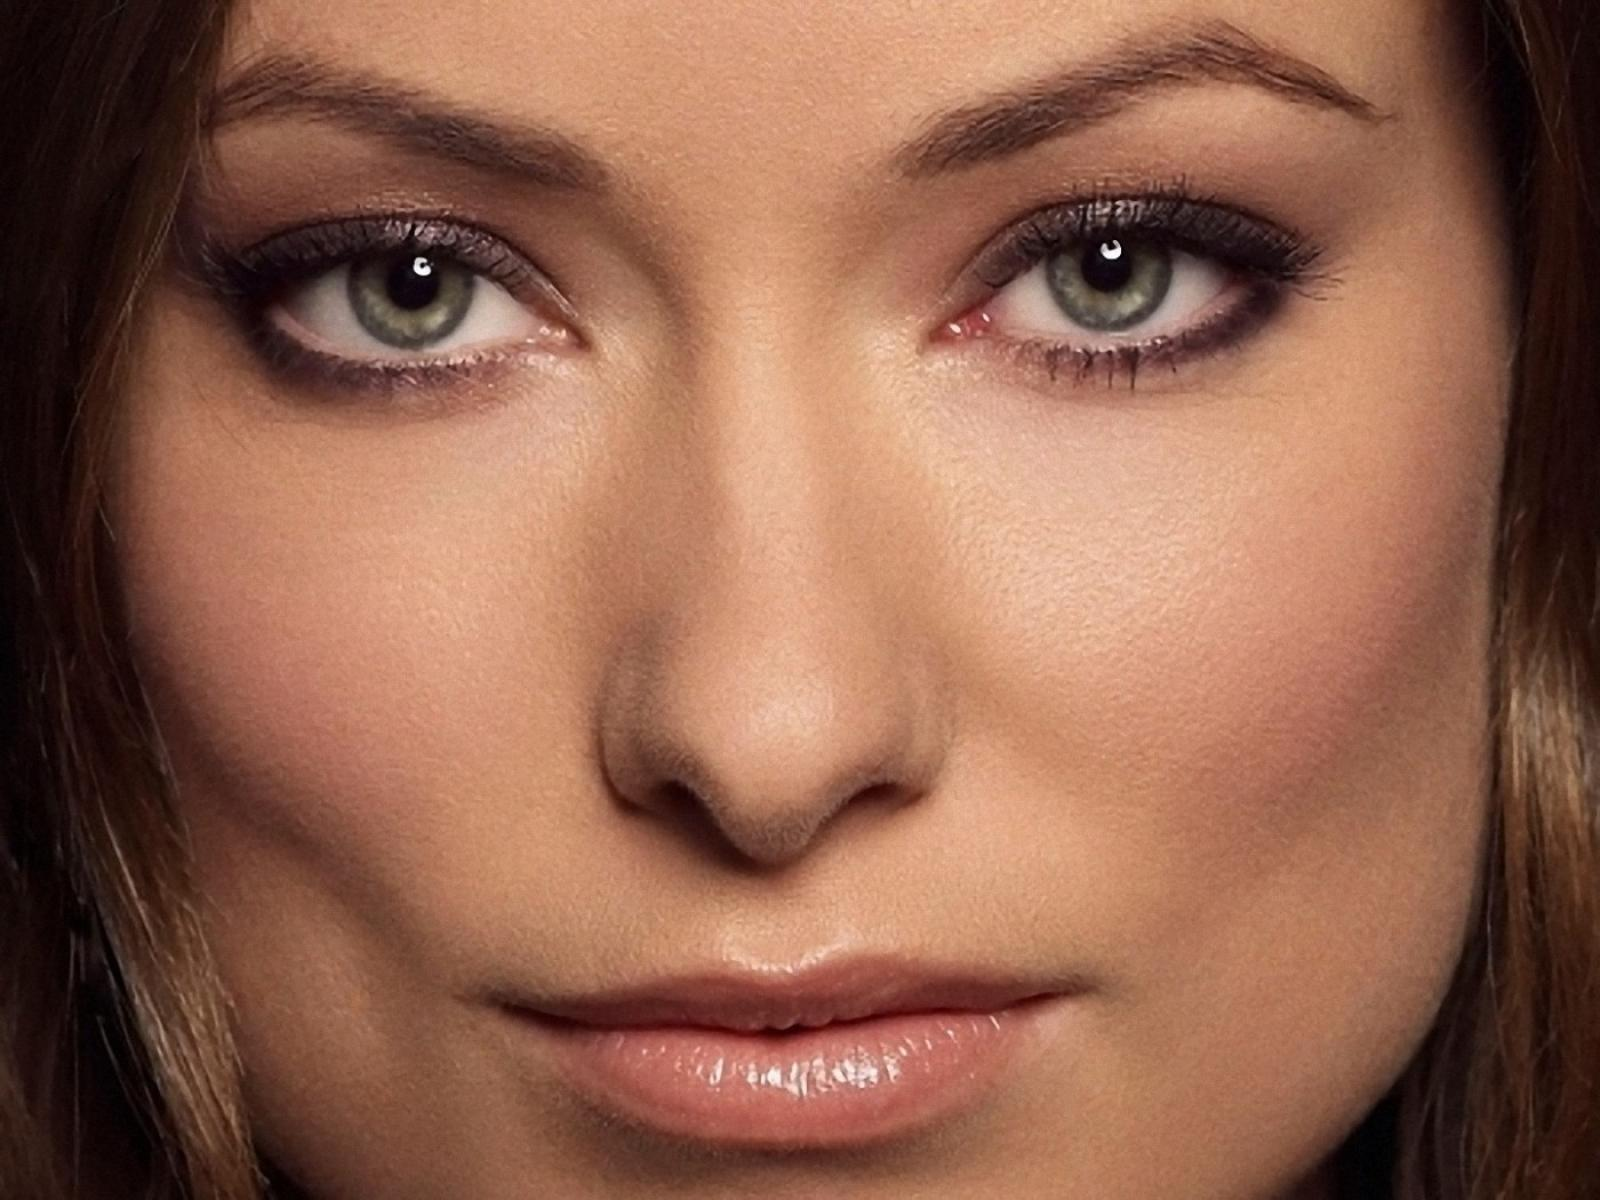 Olivia Wilde Close Up HD Desktop wallpaper, images and photos